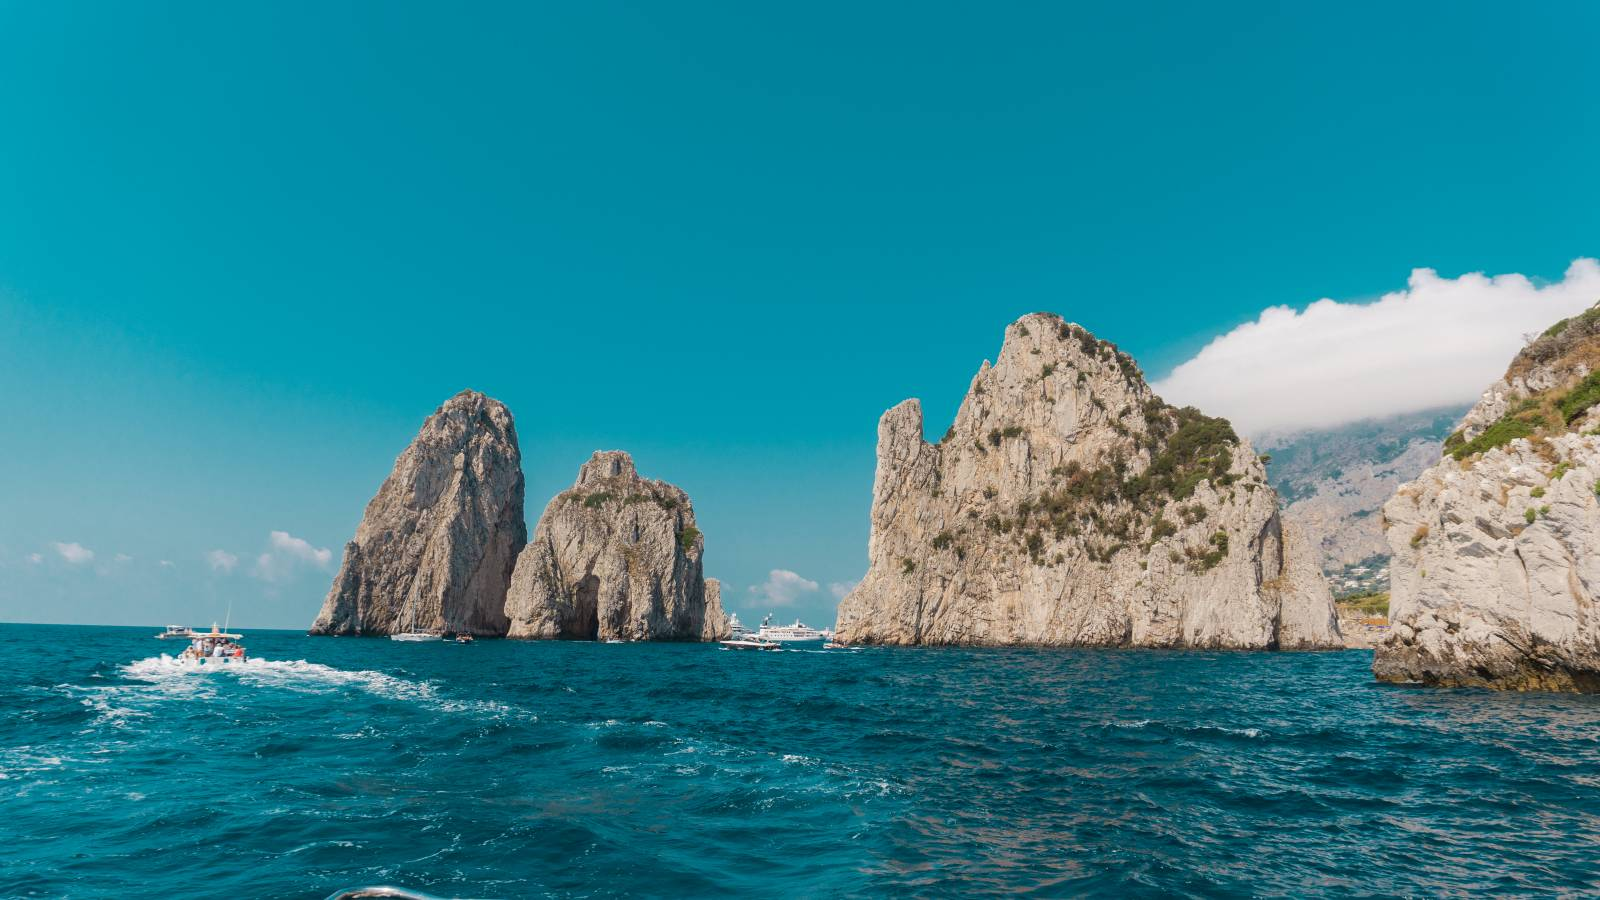 The Best Way To See Capri, Italy